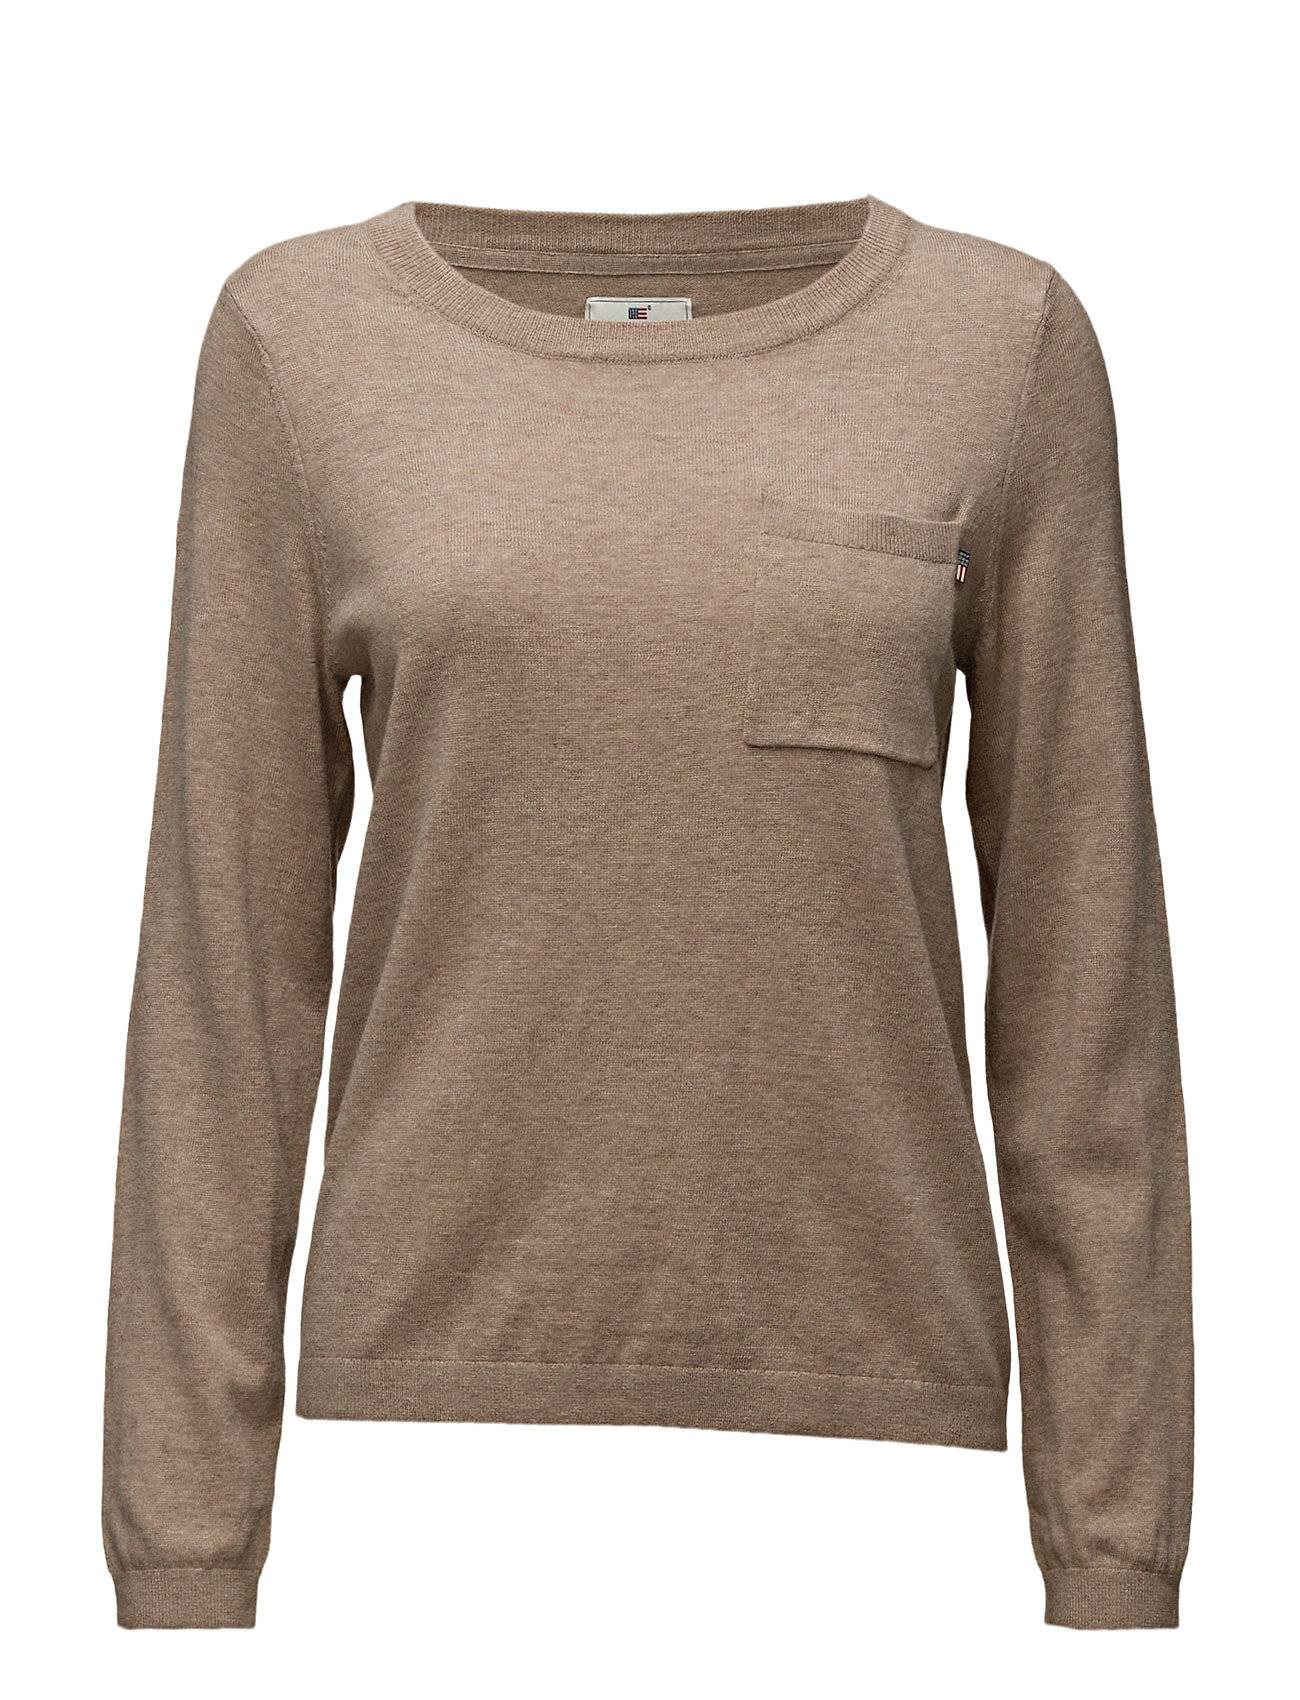 Lexington Company Suzie Sweater